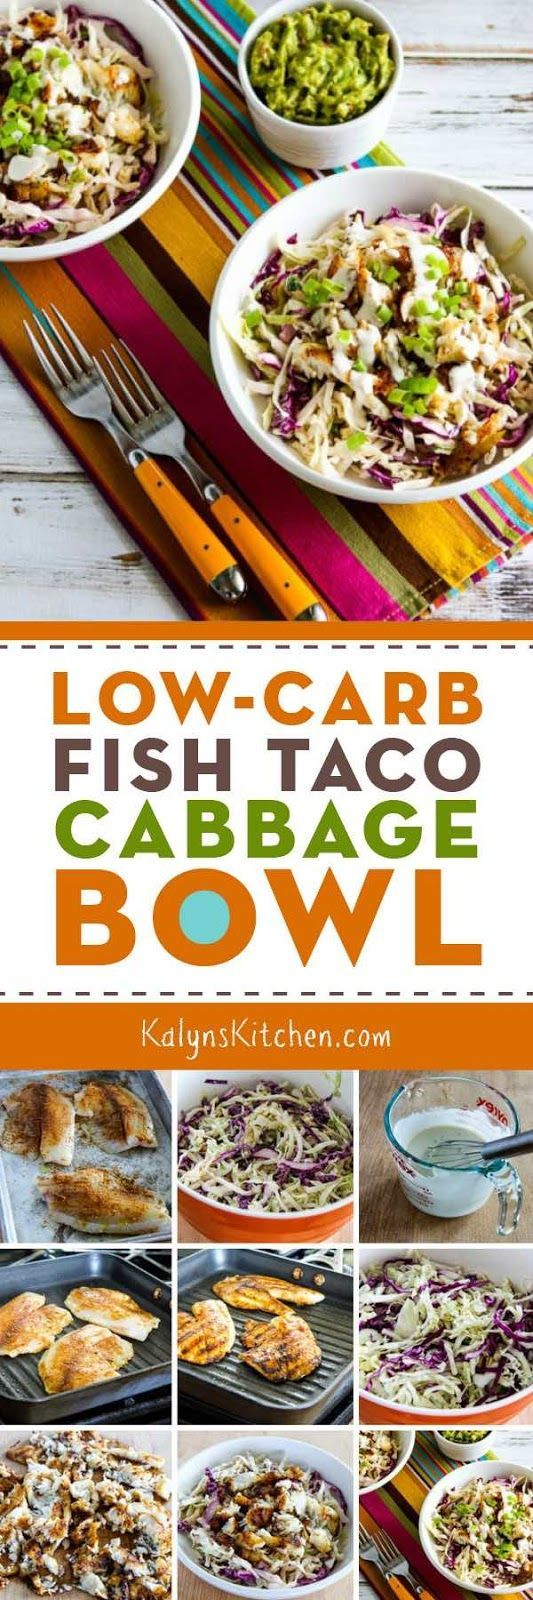 Low-Carb Fish Taco Cabbage Bowl found on KalynsKitchen.com